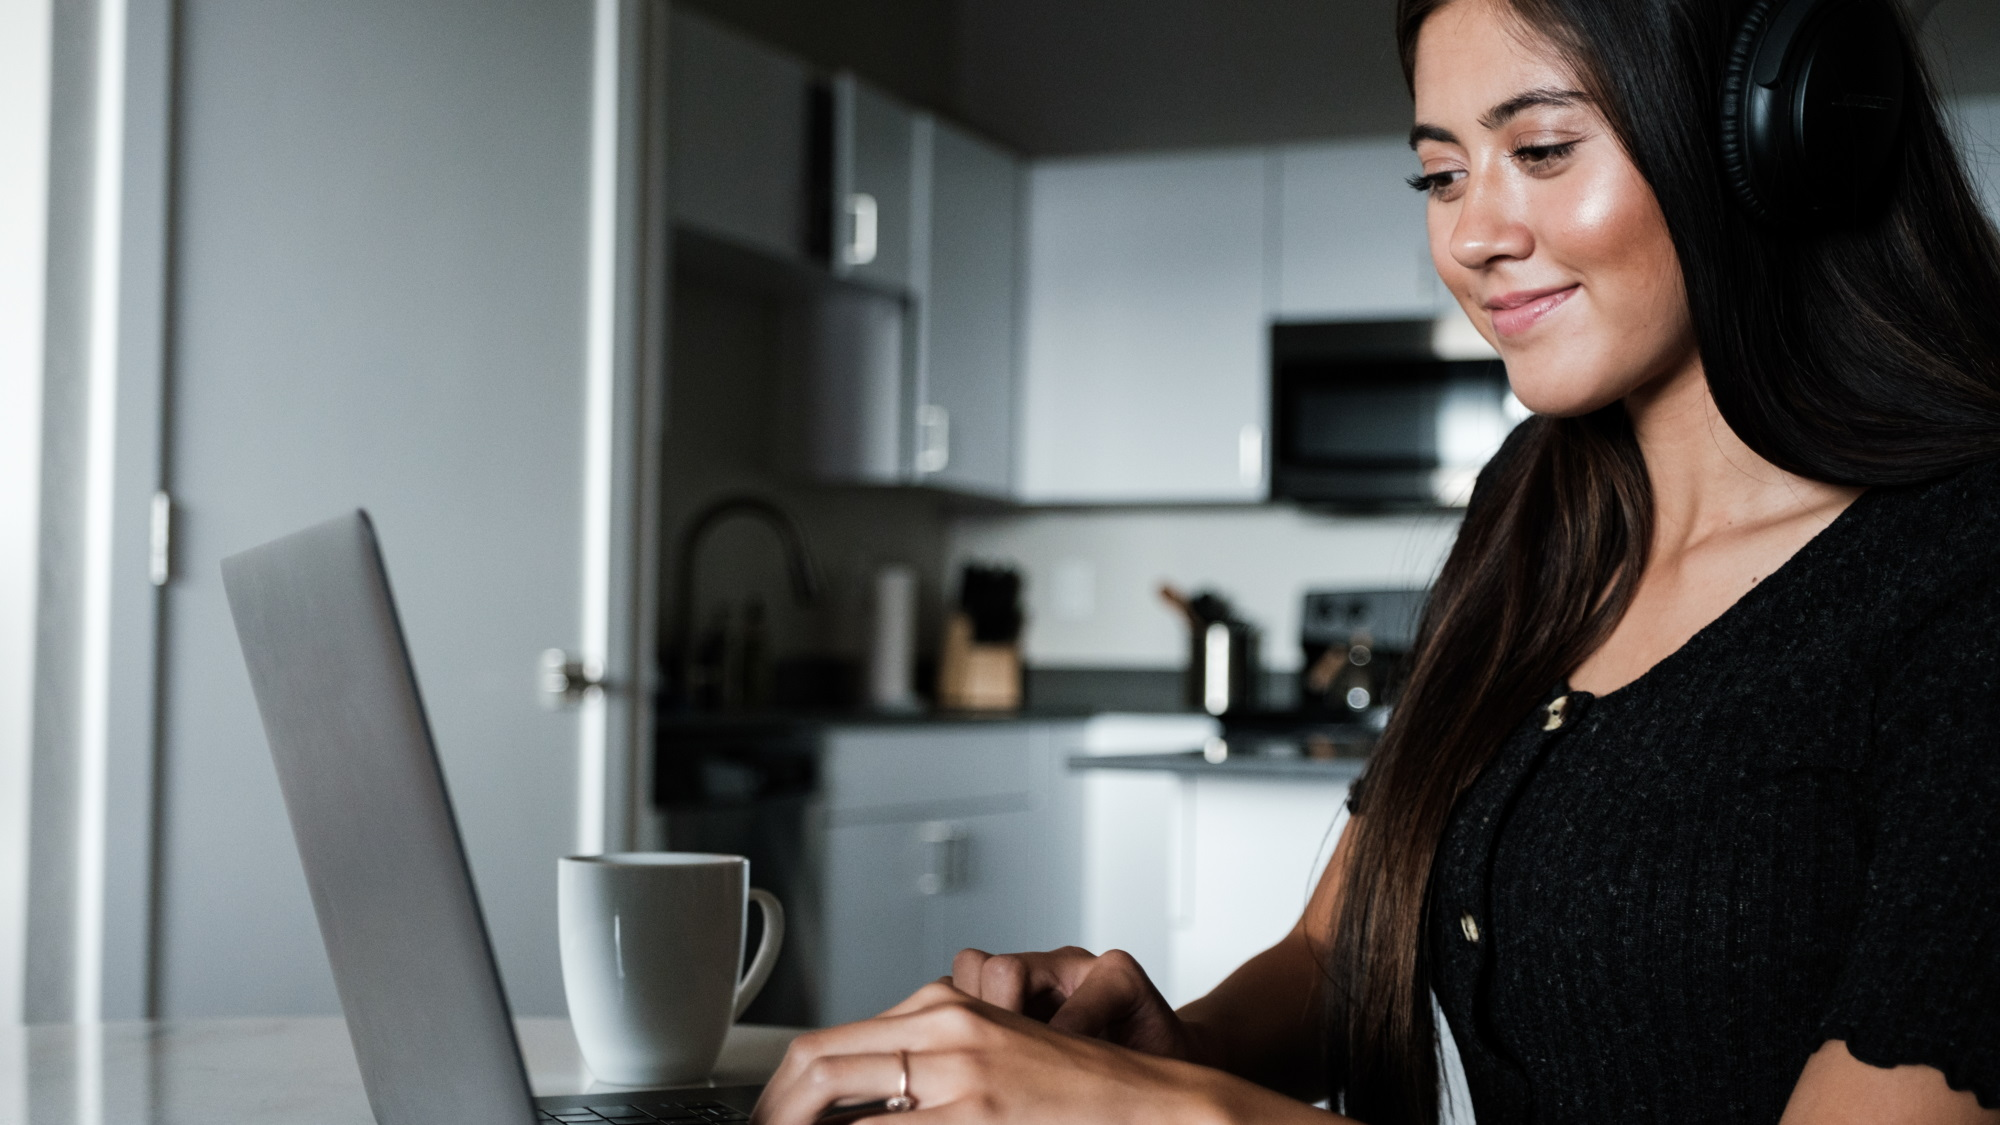 Woman coding on a laptop in her kitchen